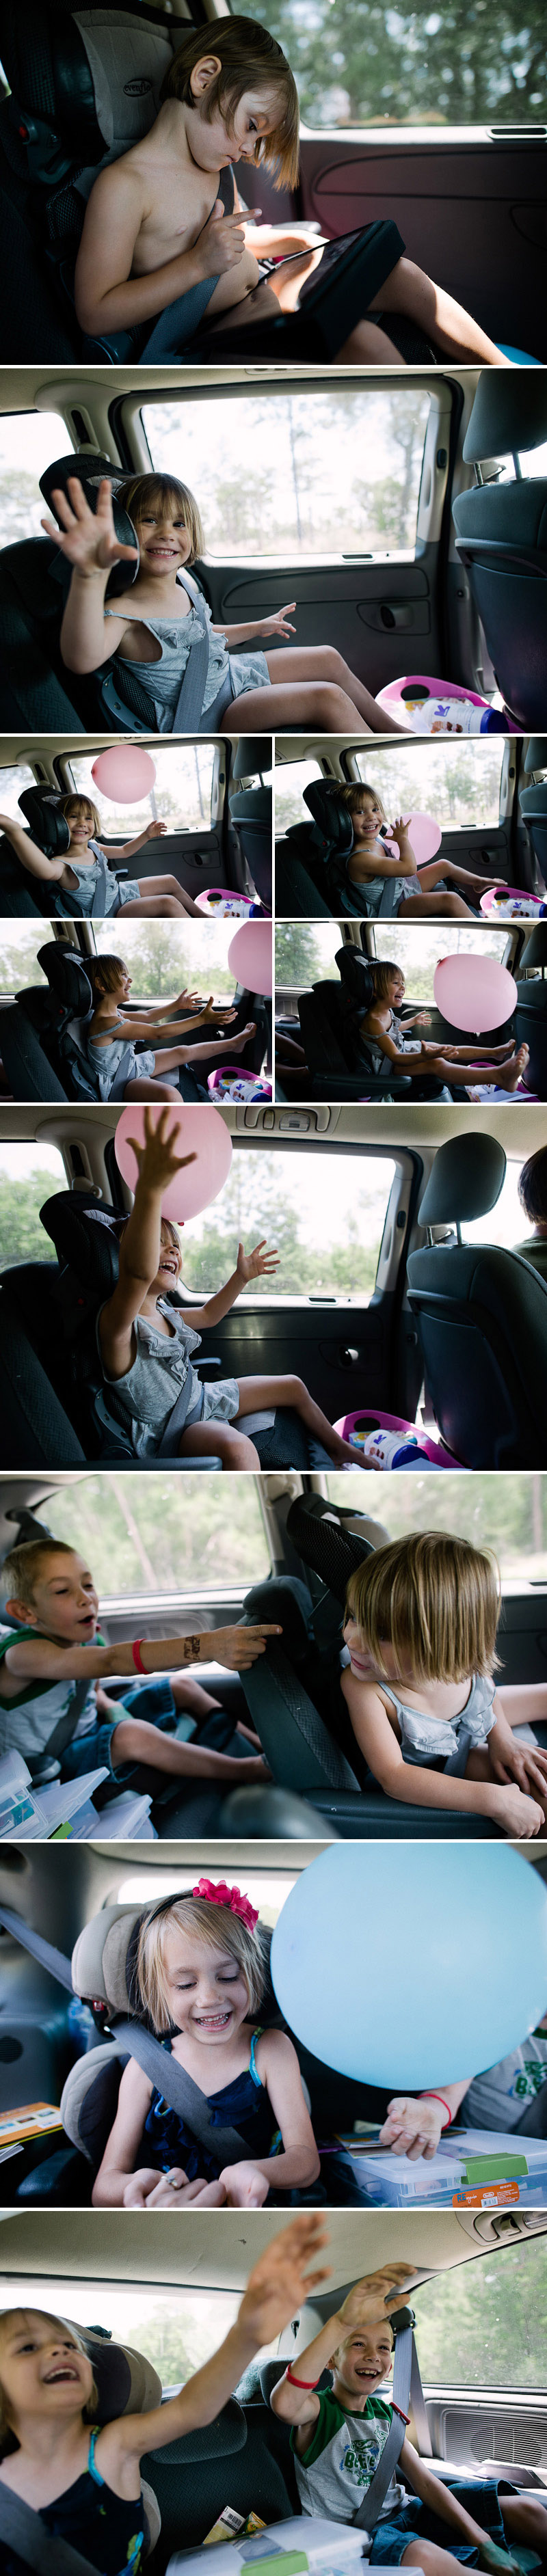 kids with balloons in the car